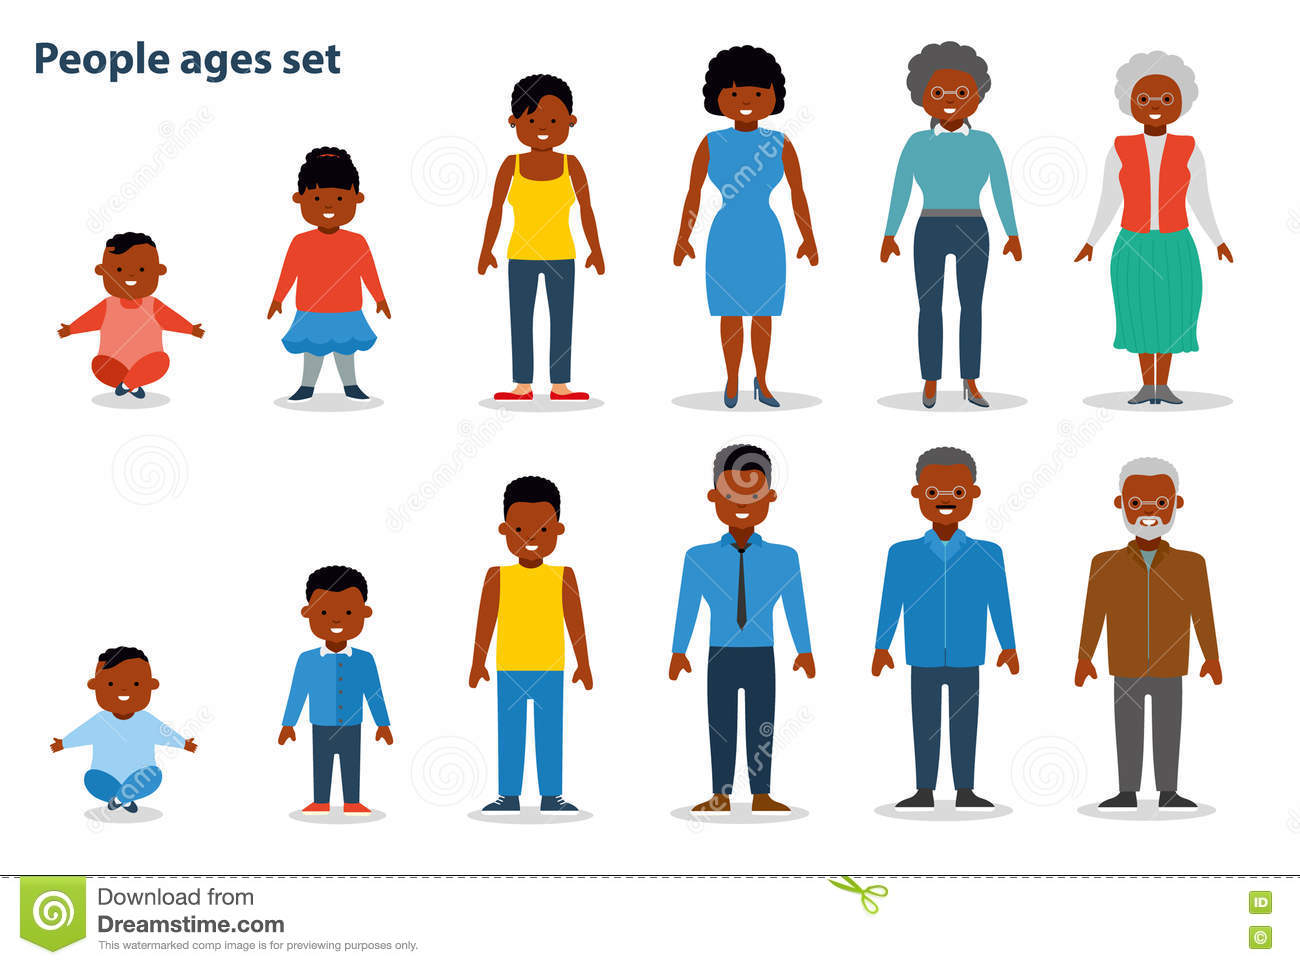 The Set Of People Of Different Ages On The Rise From Infant To The Old Man African American